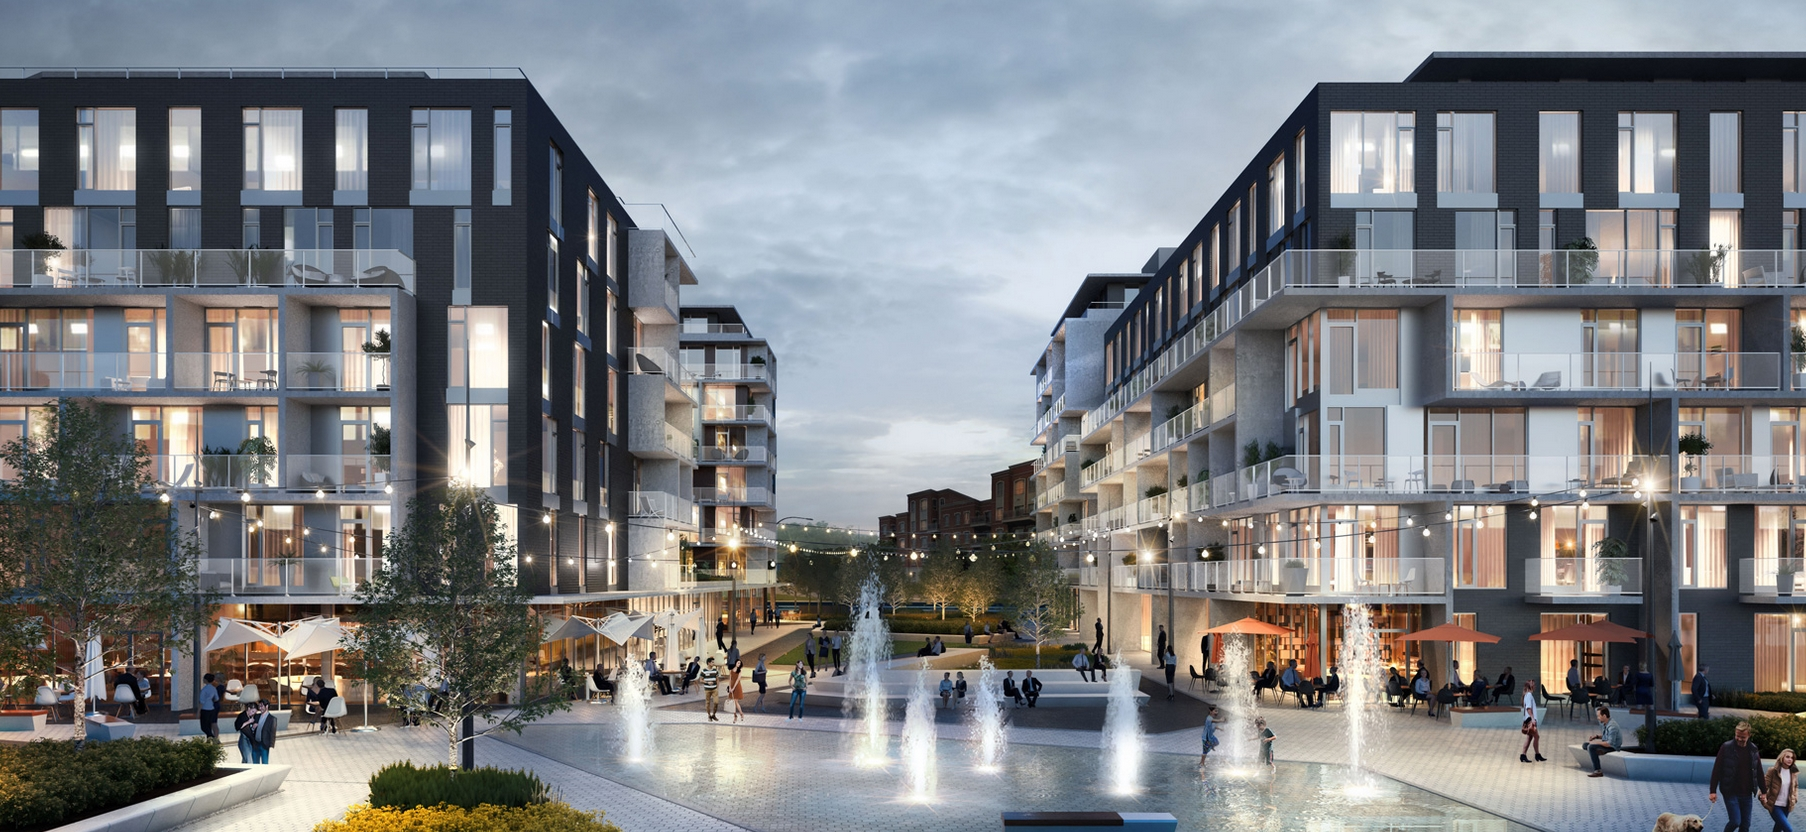 Le Groupe Jenaco Involved in One of the First LEED ND Neighborhoods in Québec